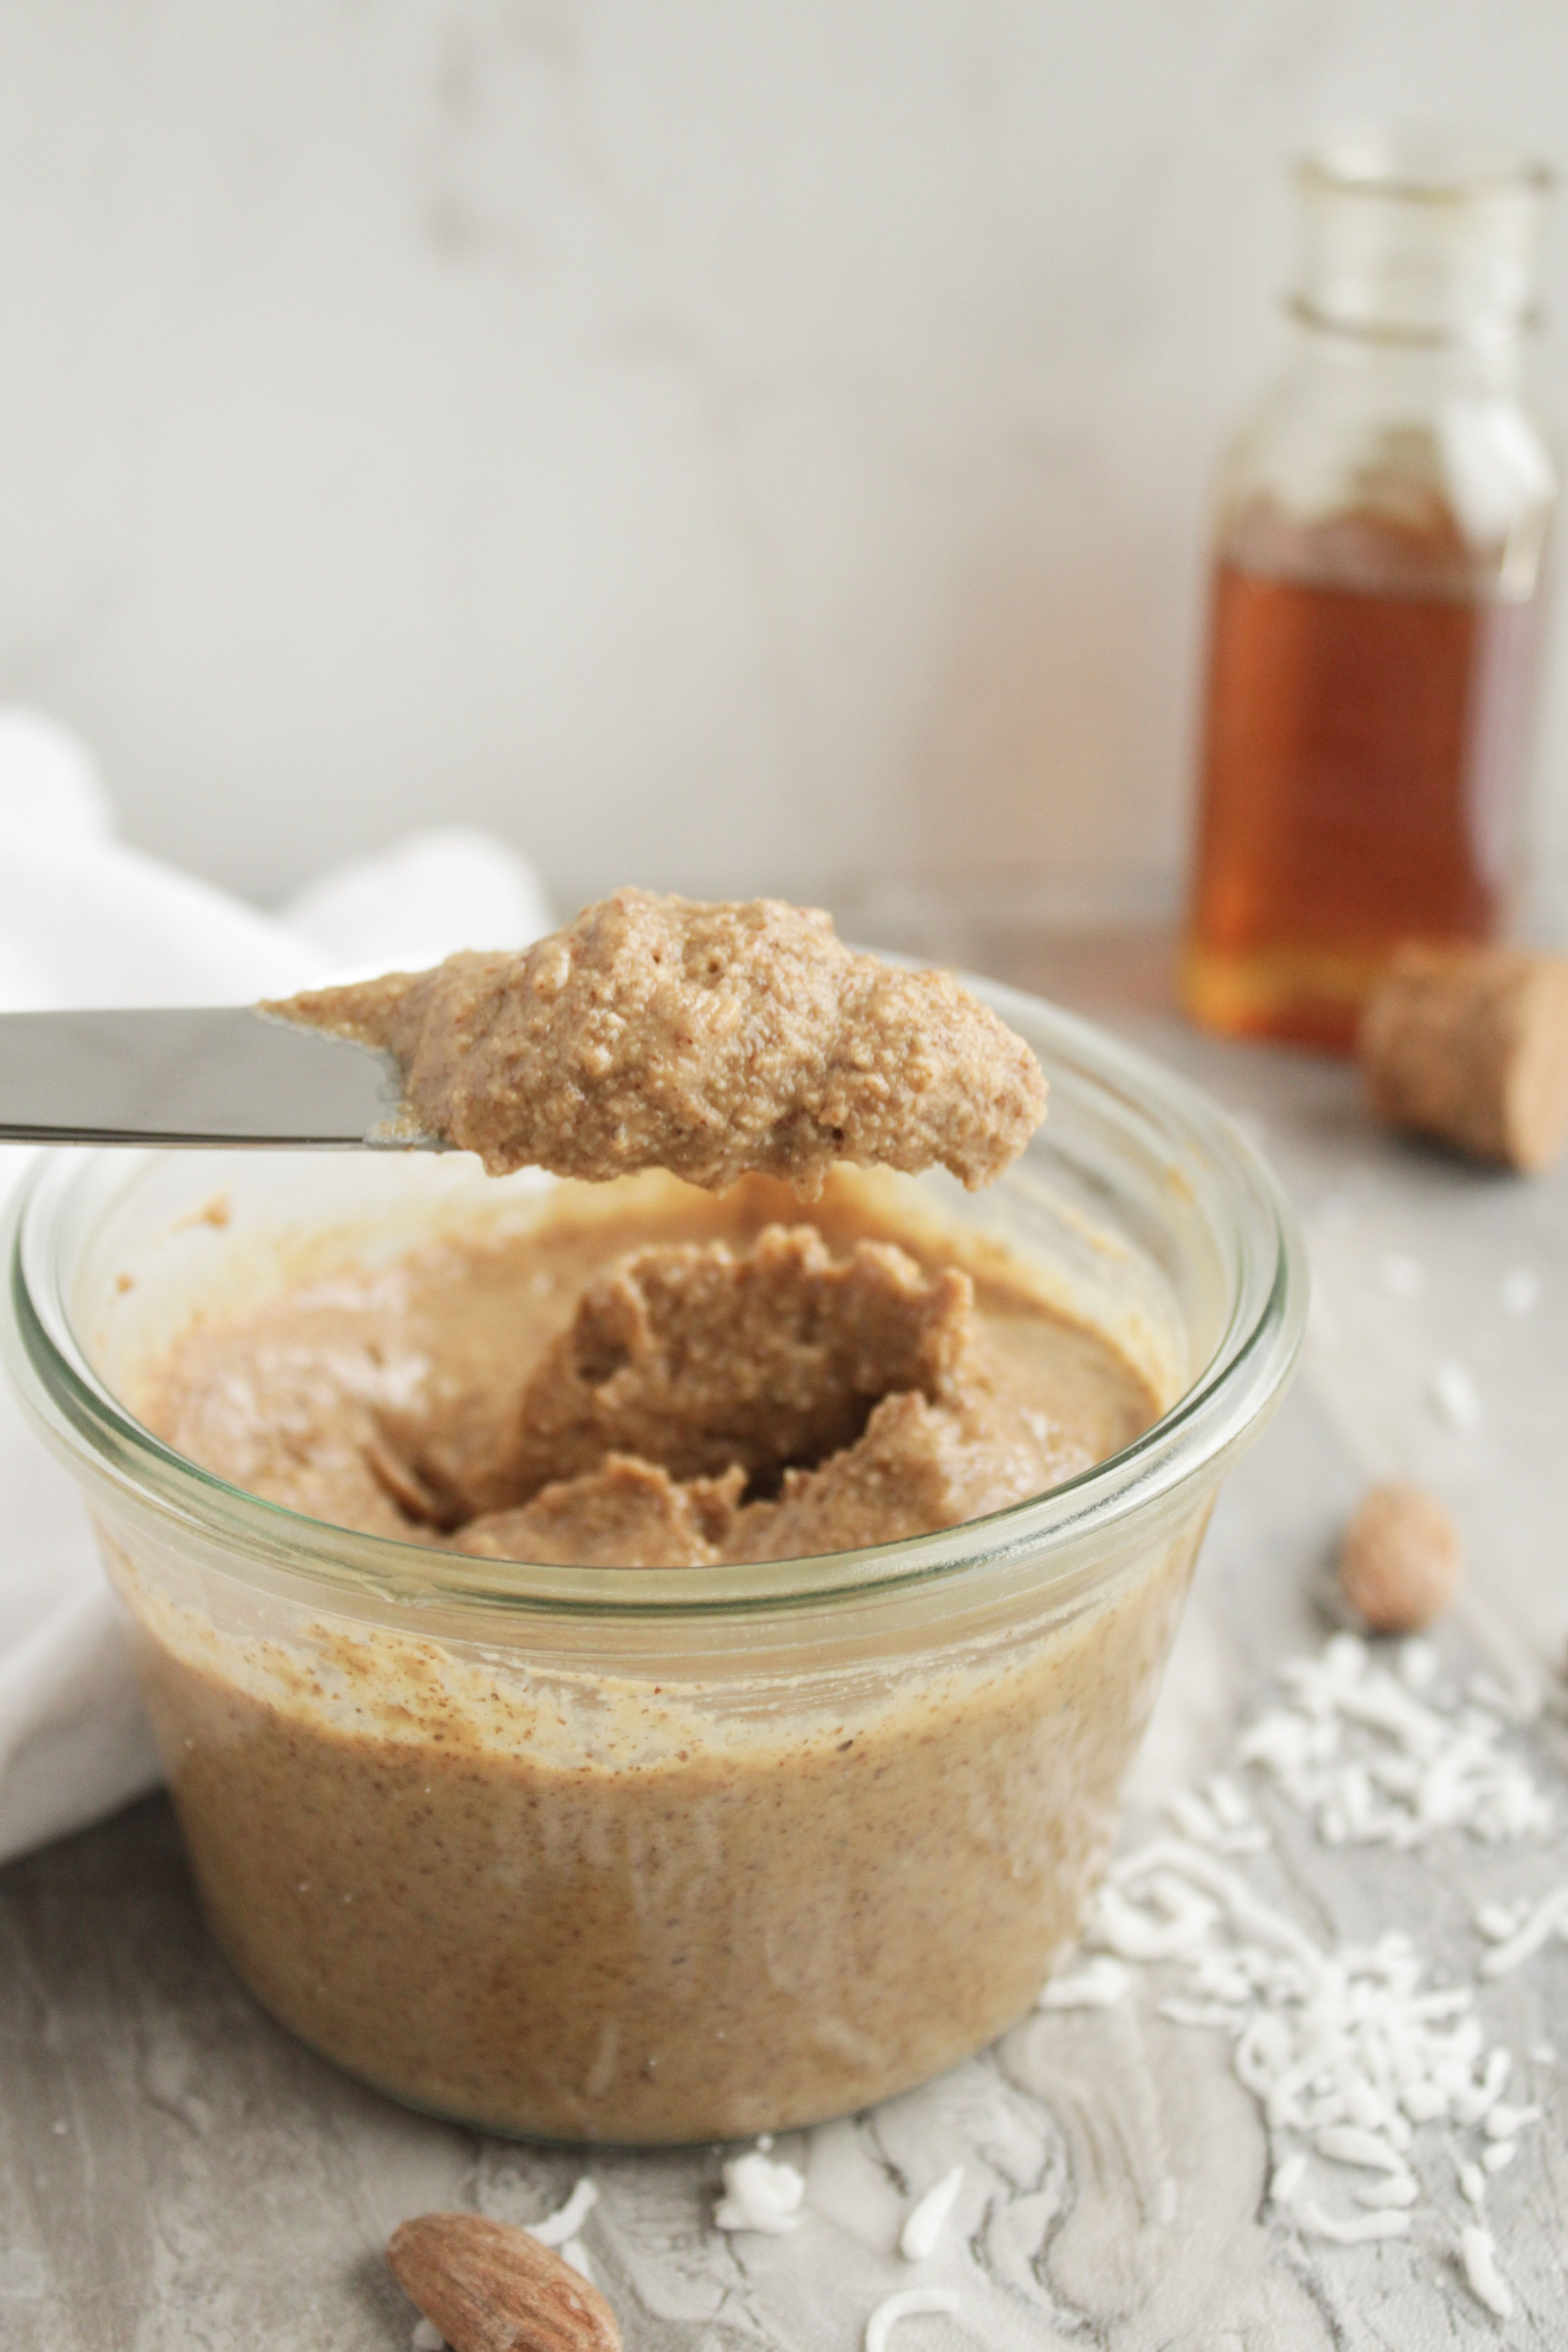 Coconut Honey Almond Butter www.petitfoodie.com